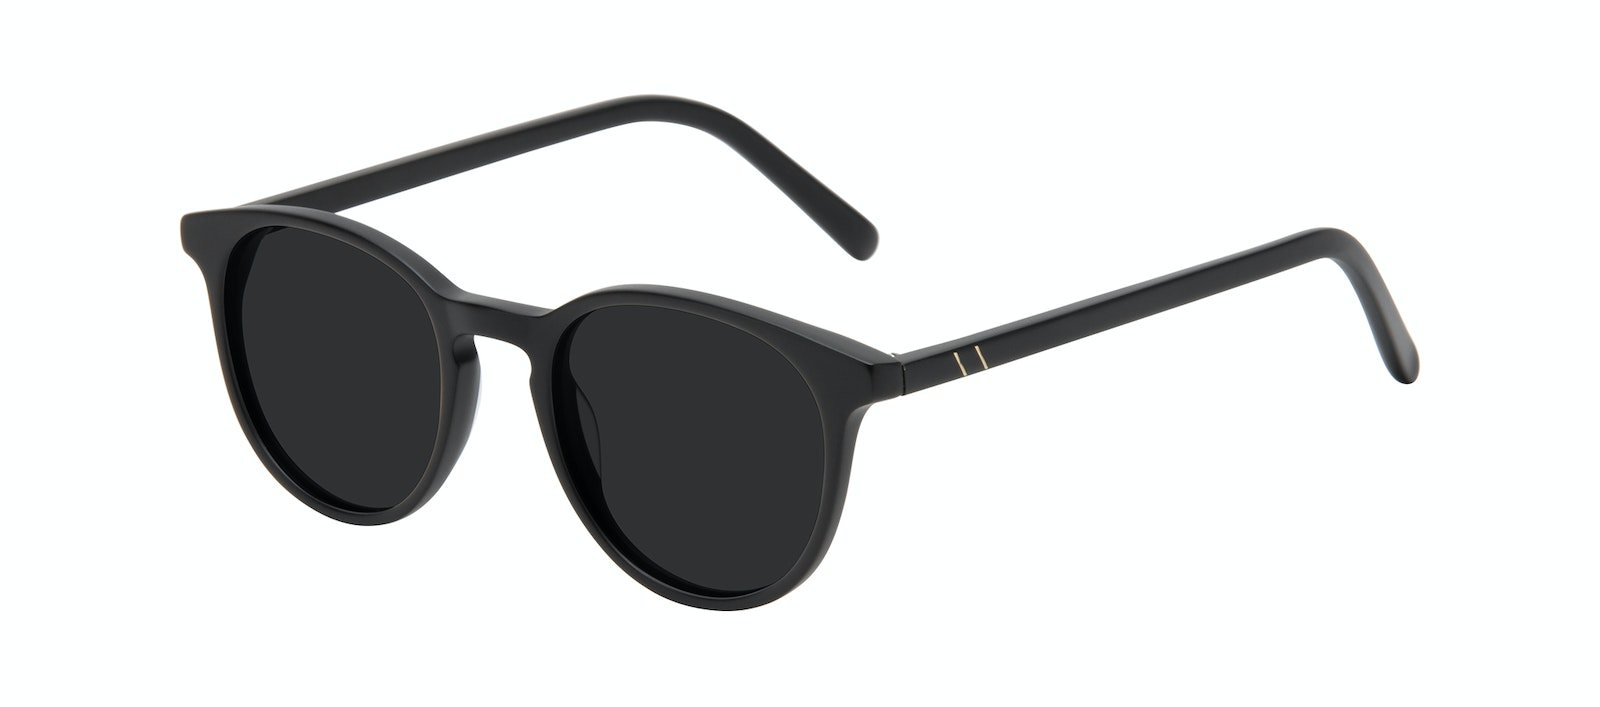 Affordable Fashion Glasses Round Sunglasses Men Select Black Matte Tilt